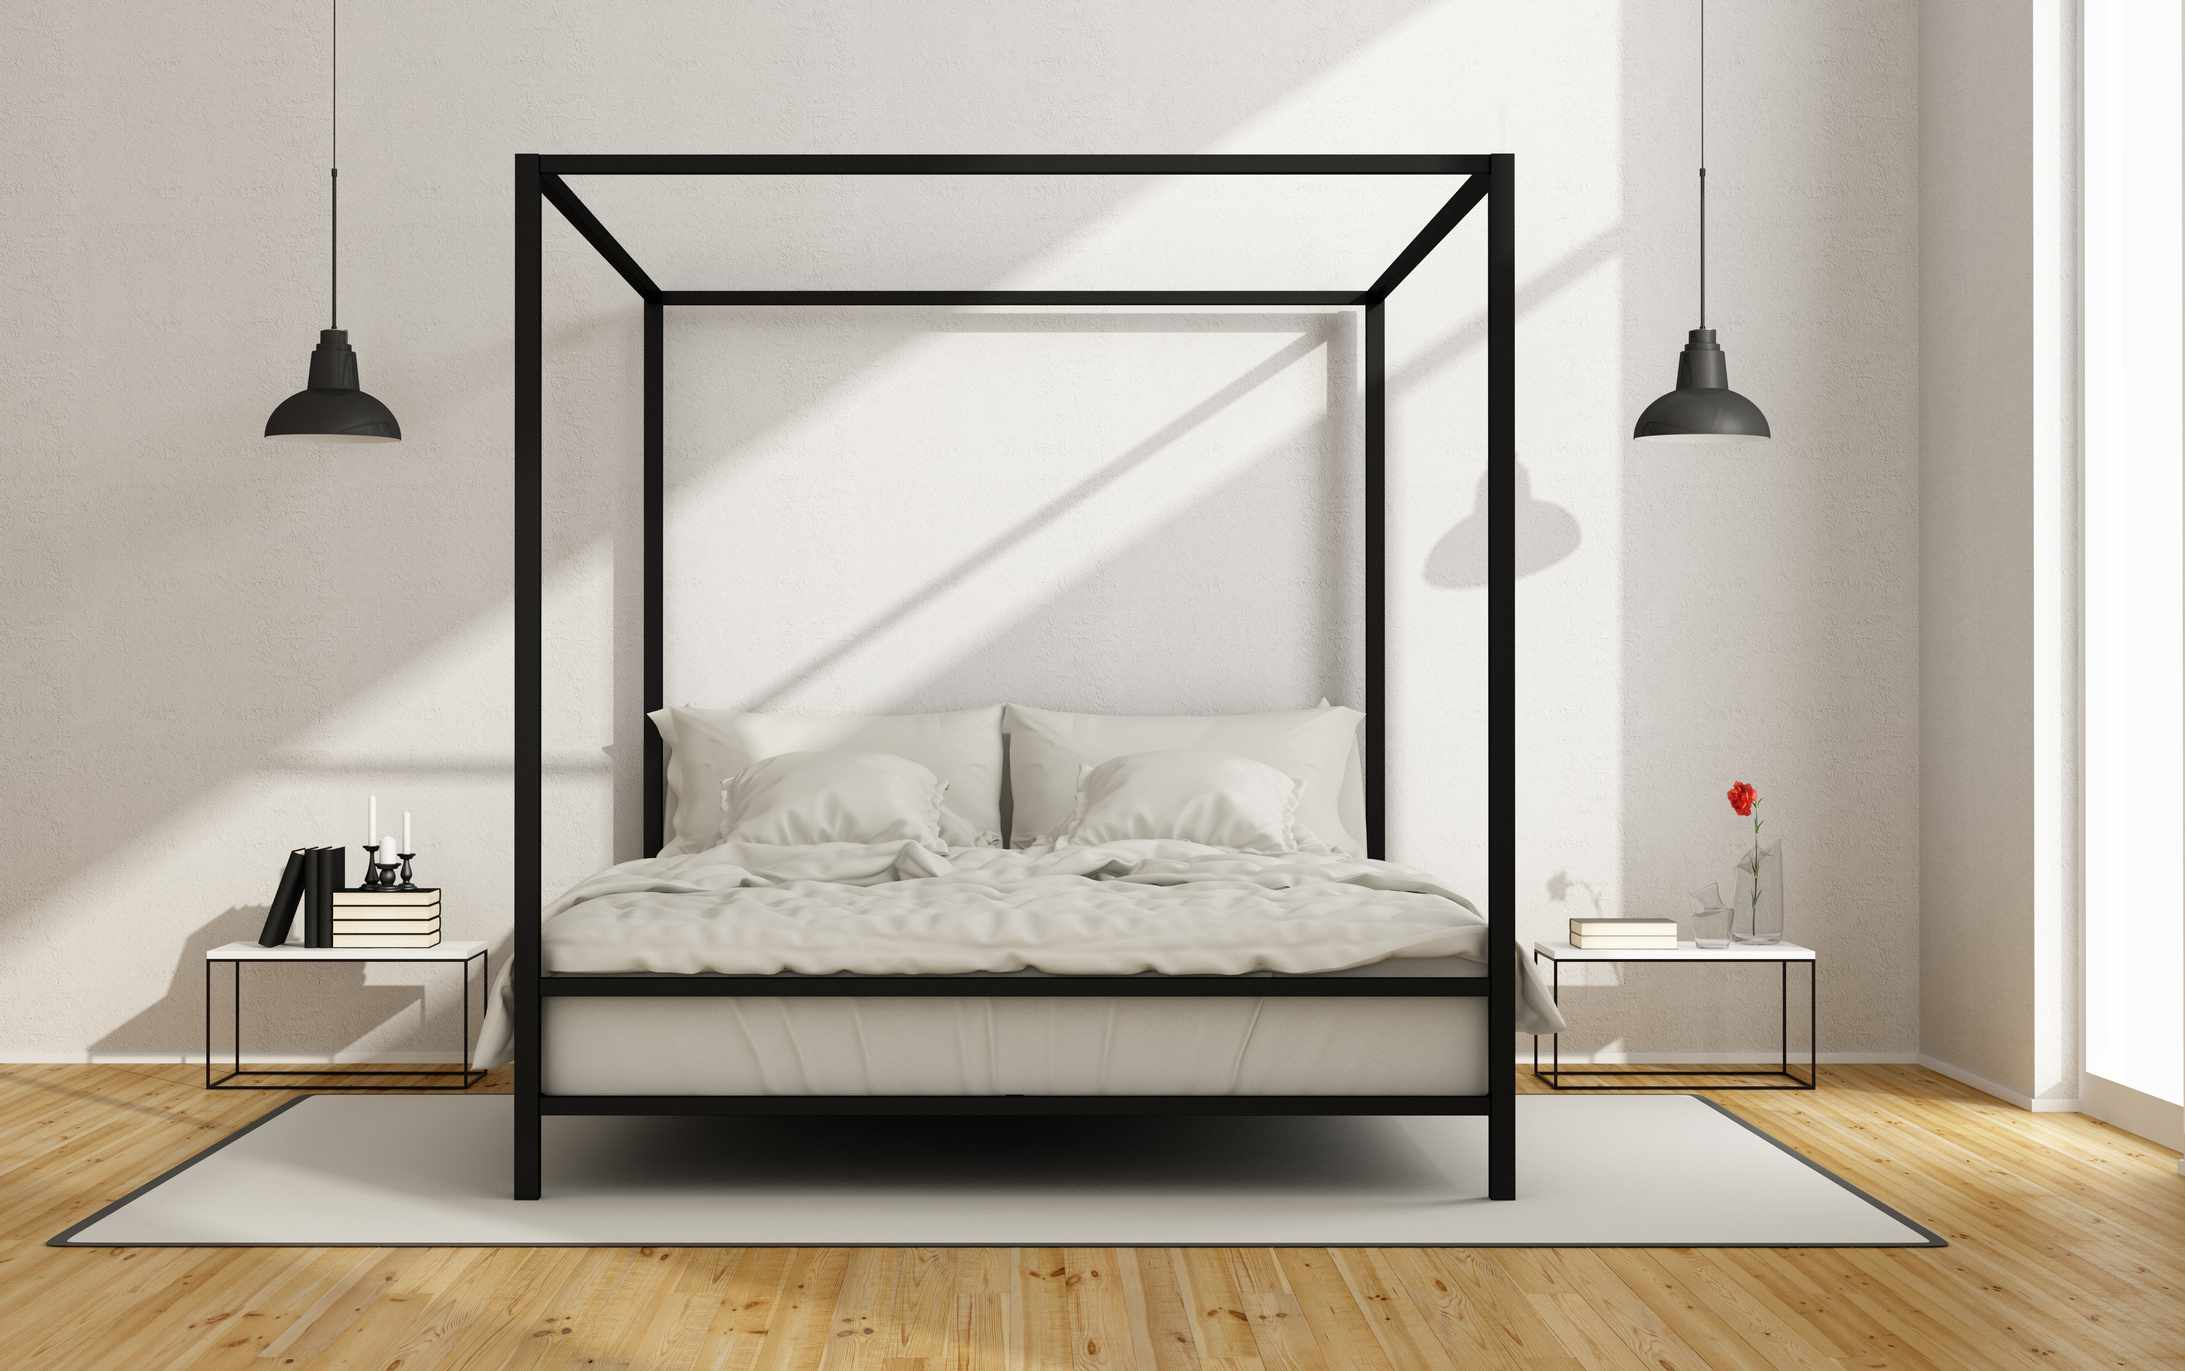 A contemporary black canopy bed frame in a white room.